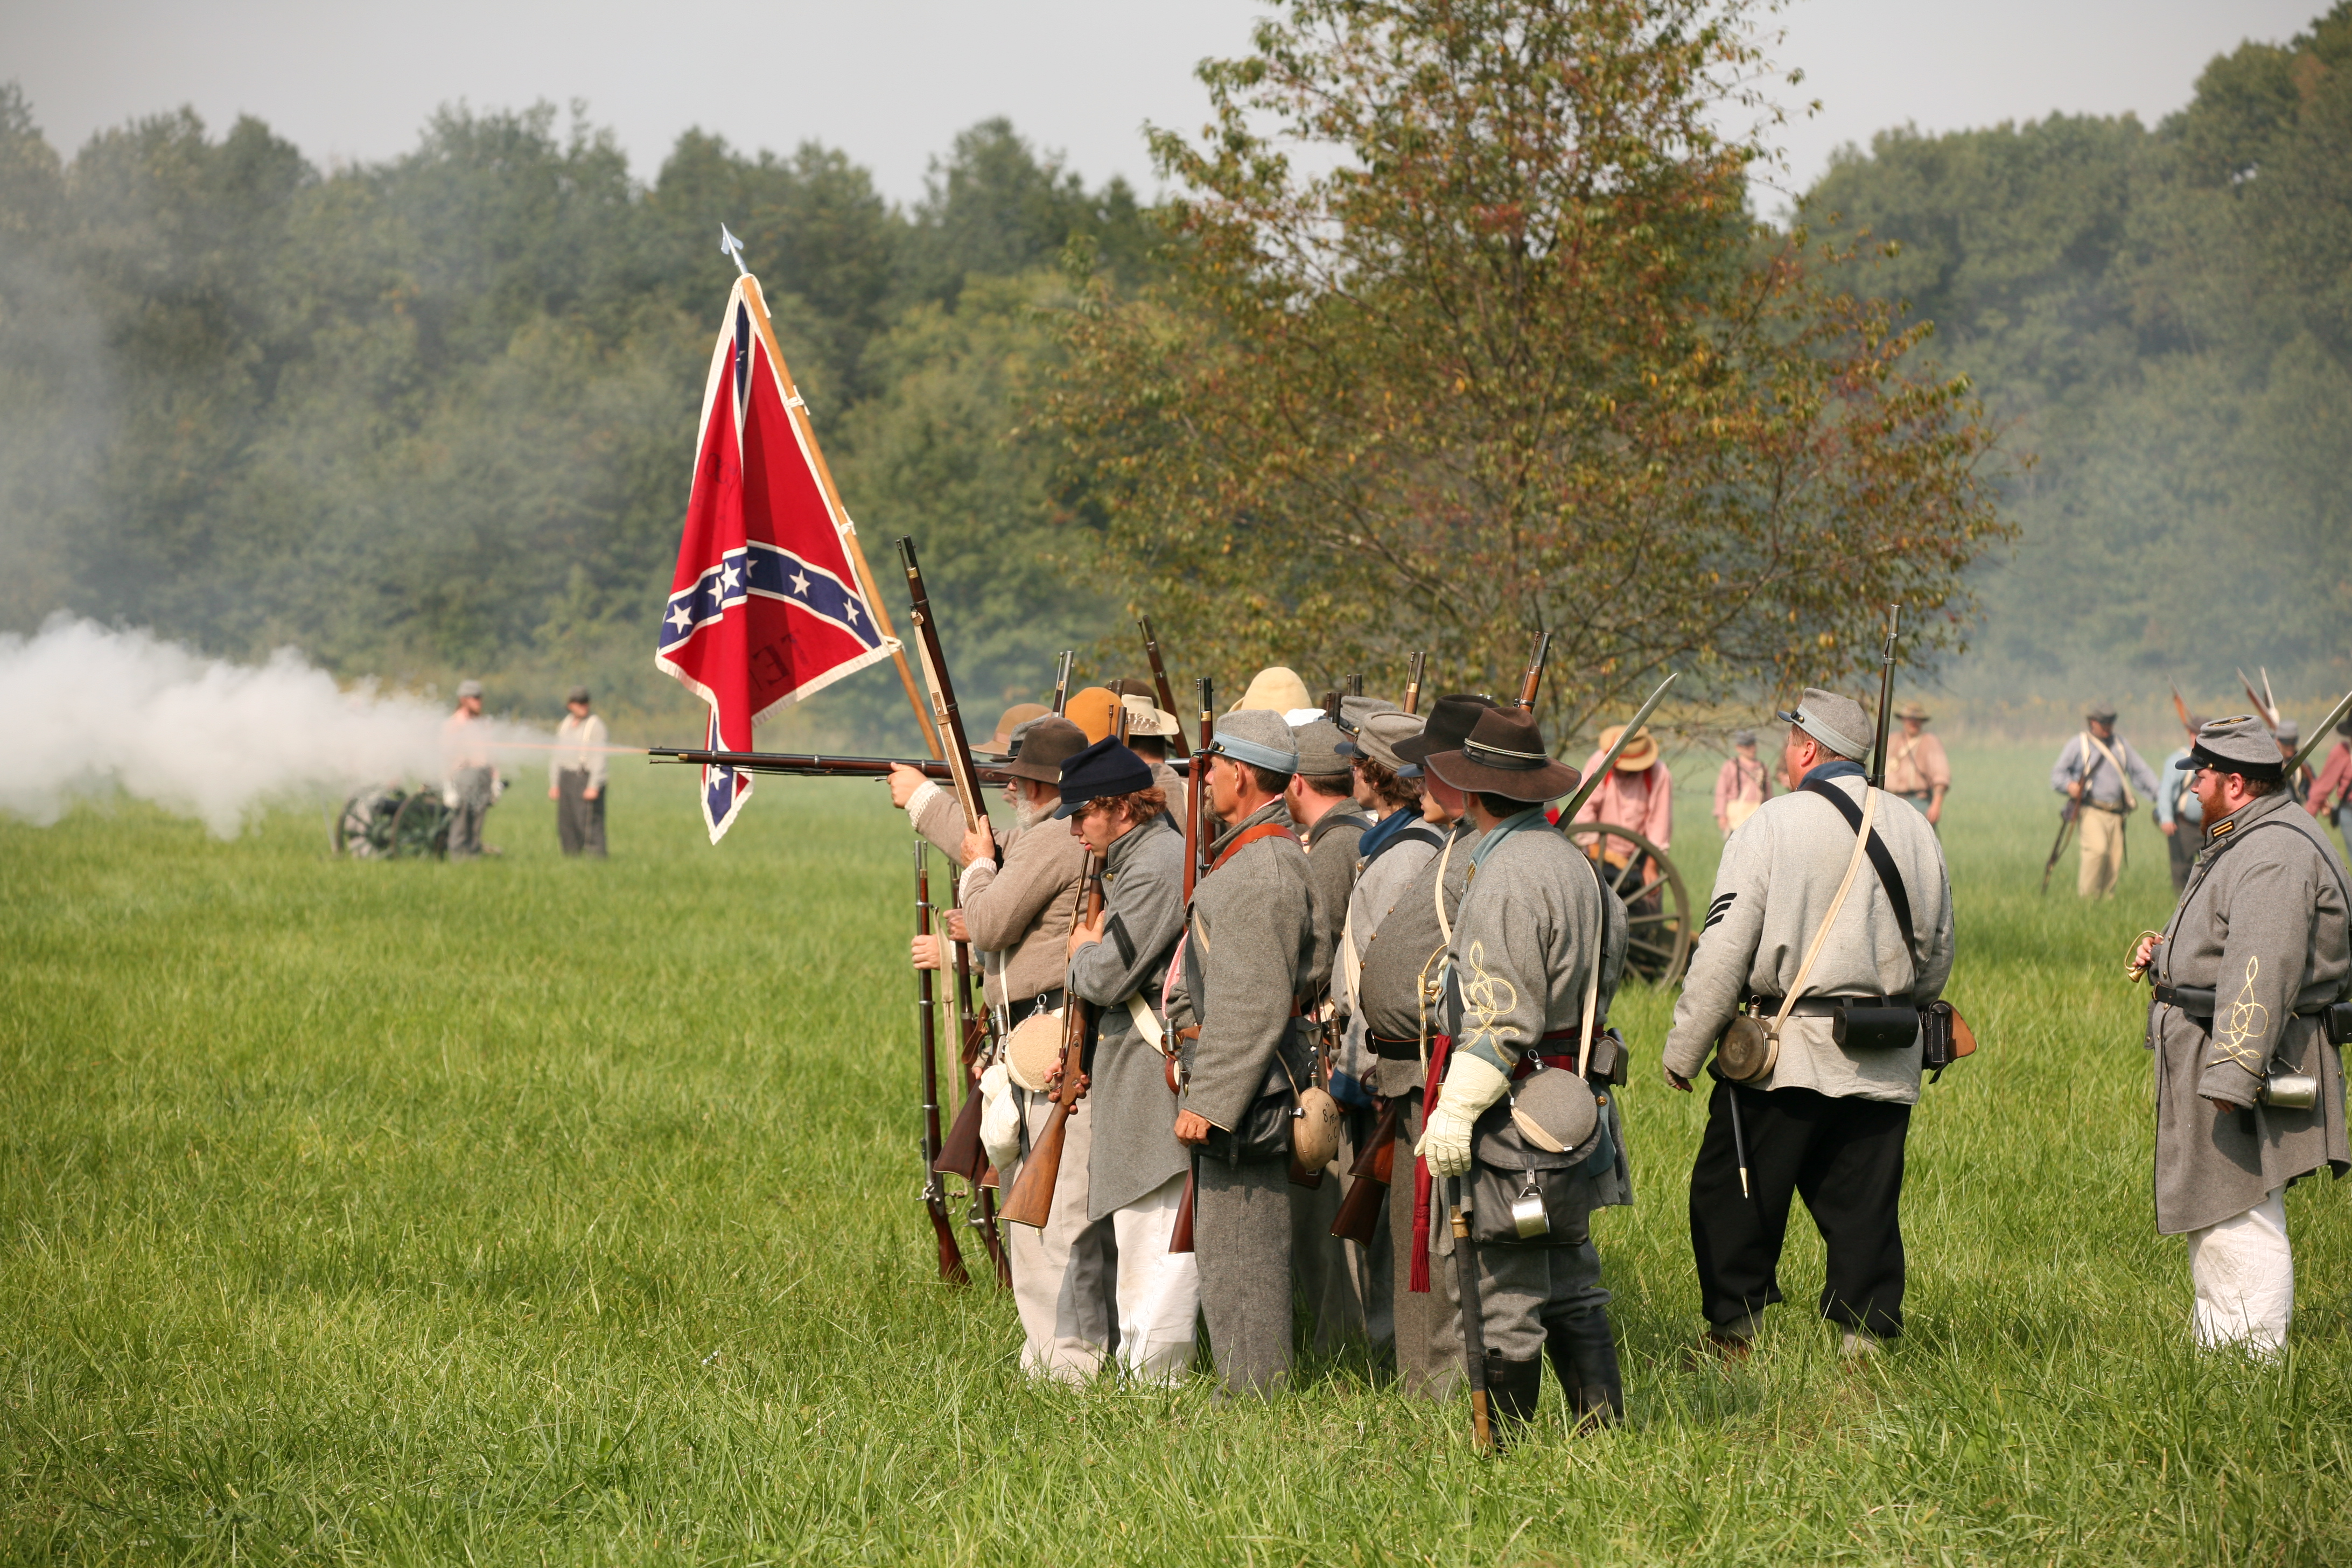 Description Civil war reenactment 1.jpg